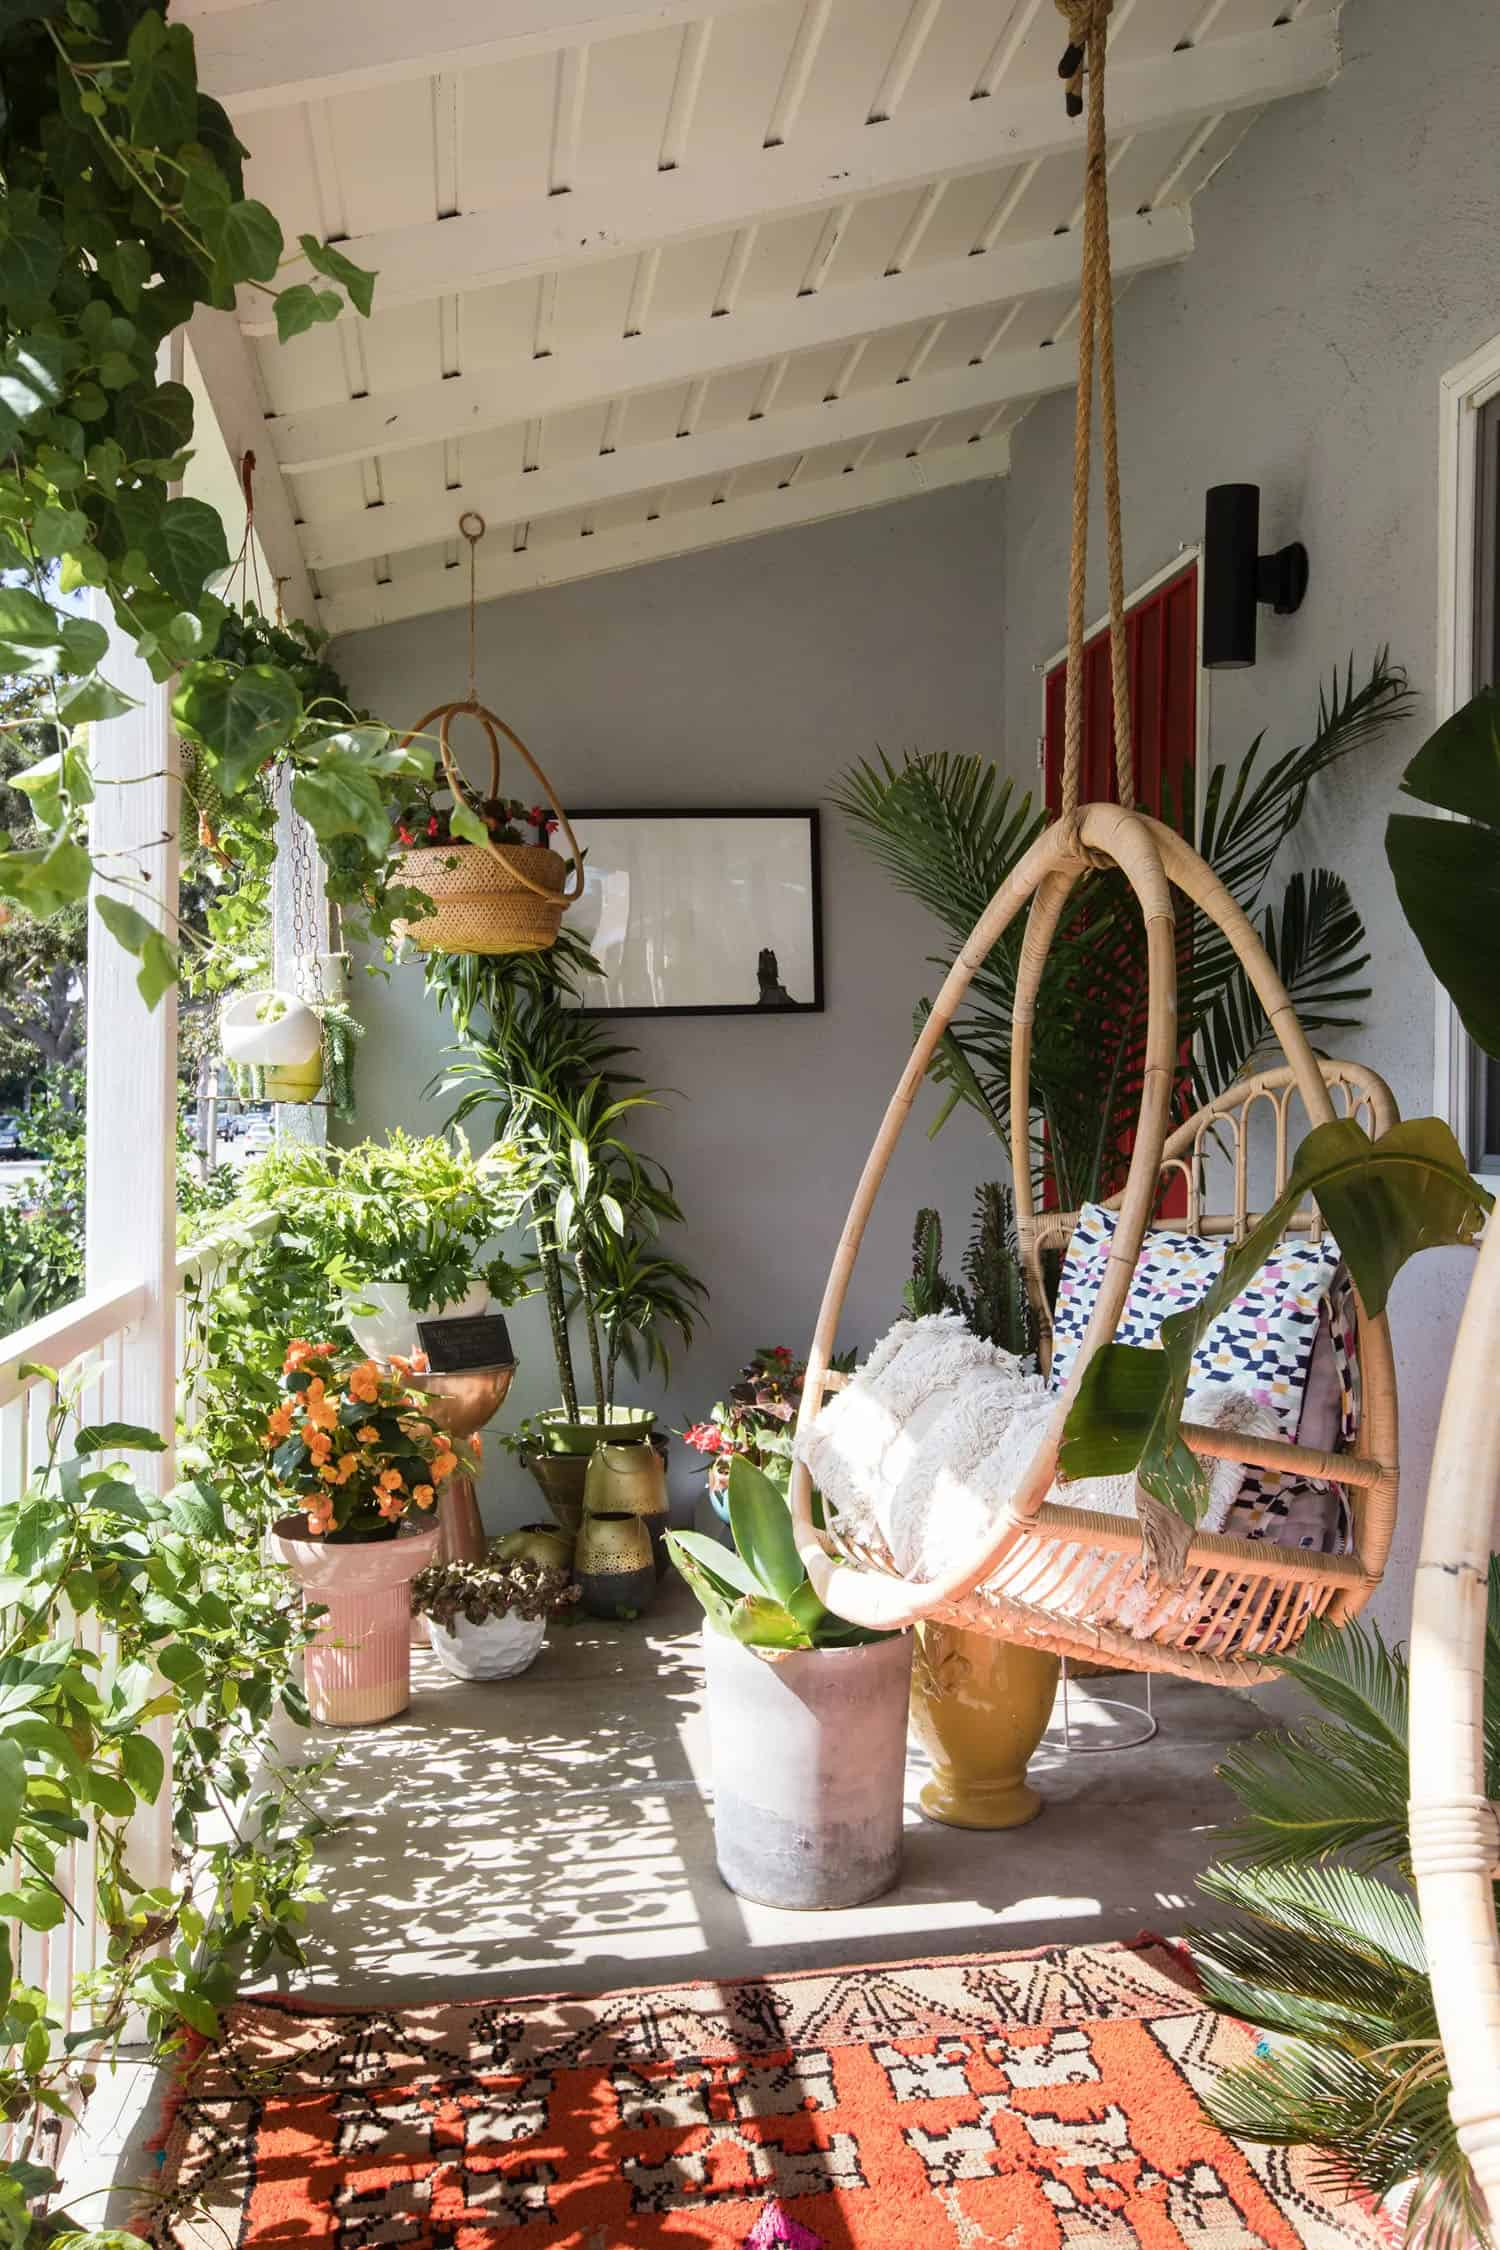 cozy-porch-with-a-hanging-swing-and-plants